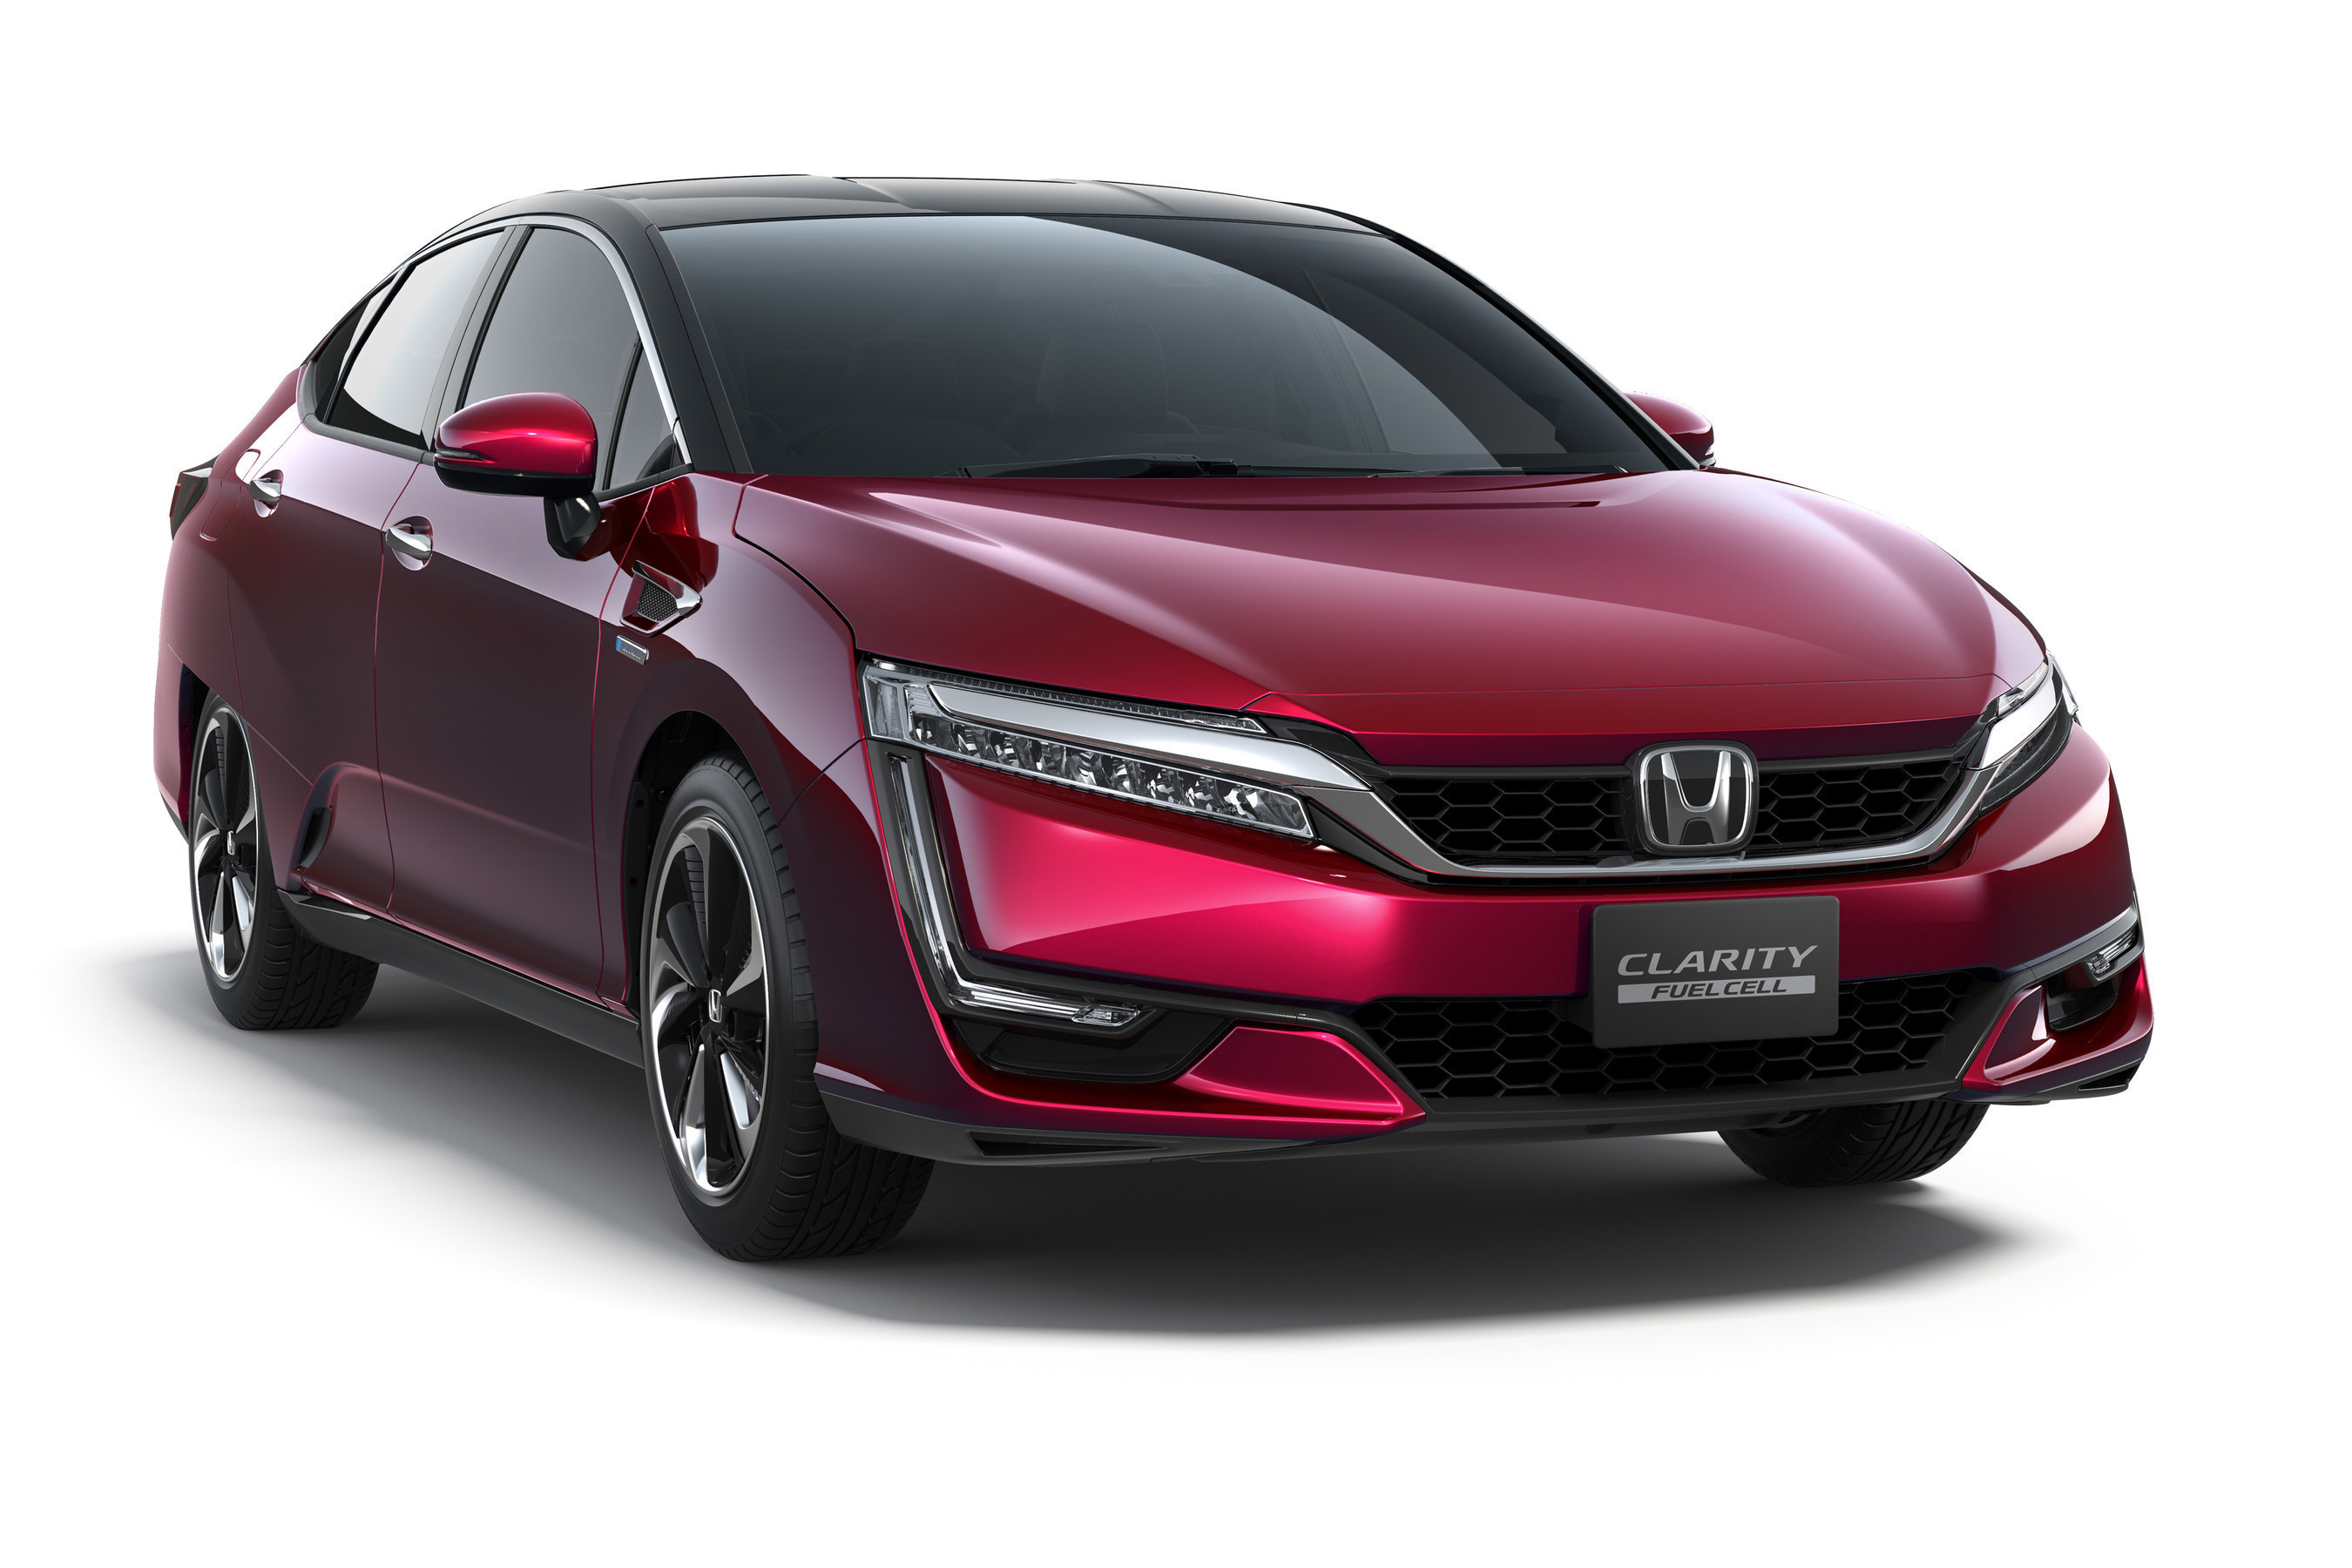 Honda Clarity Fuel Cell Sedan Makes North American Debut at 2015 Los Angeles Auto Show